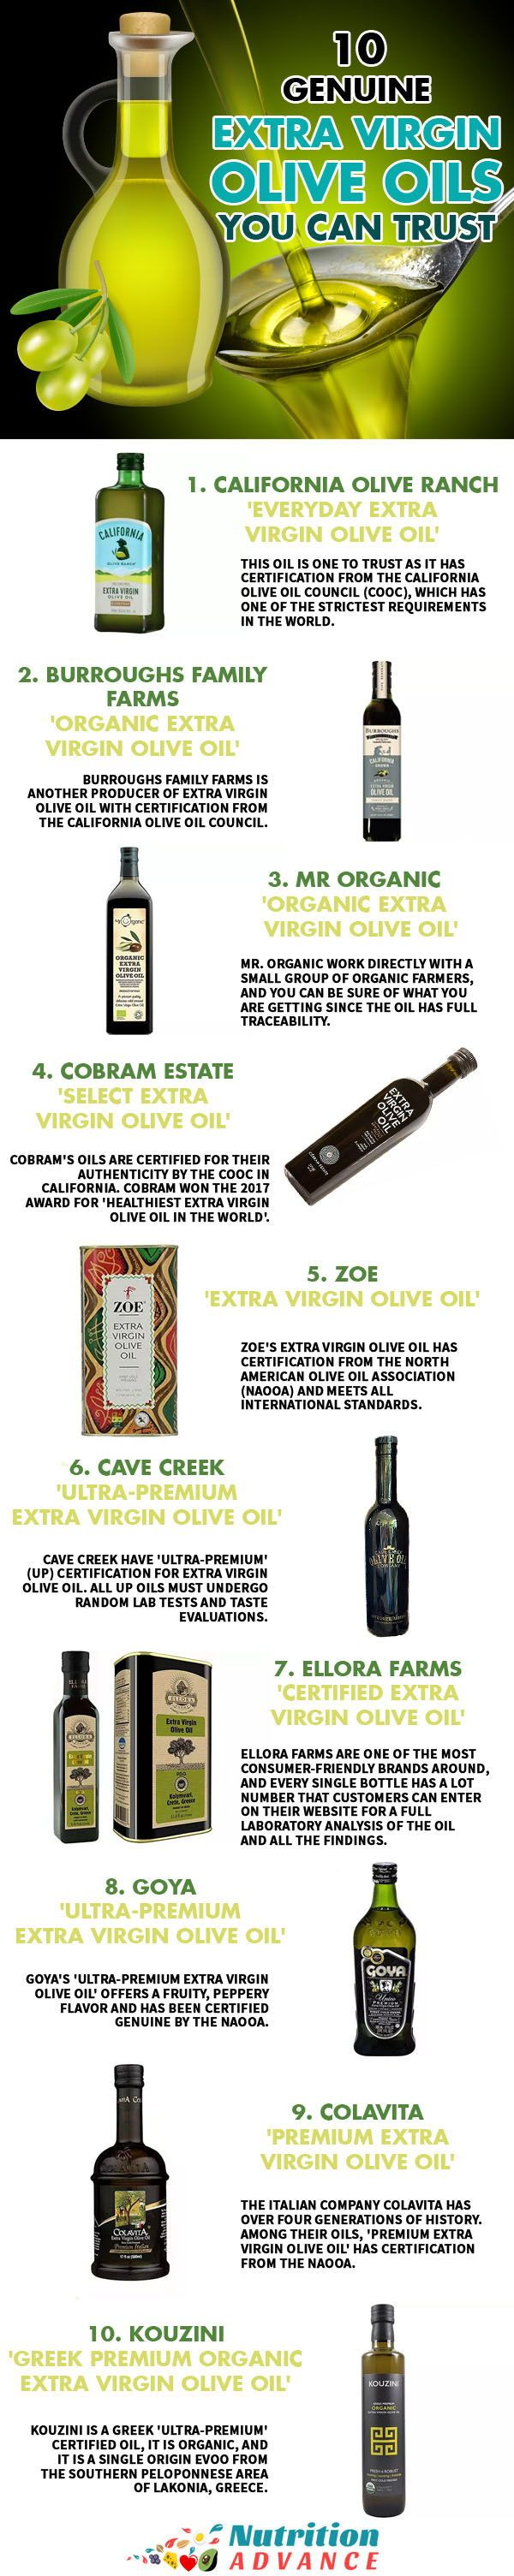 Food Infographic 10 Genuine Extra Virgin Olive Oil Brands You Can Trust Olive Oil Is One Of The Infographicnow Com Your Number One Source For Daily Infographics Visual Creativity